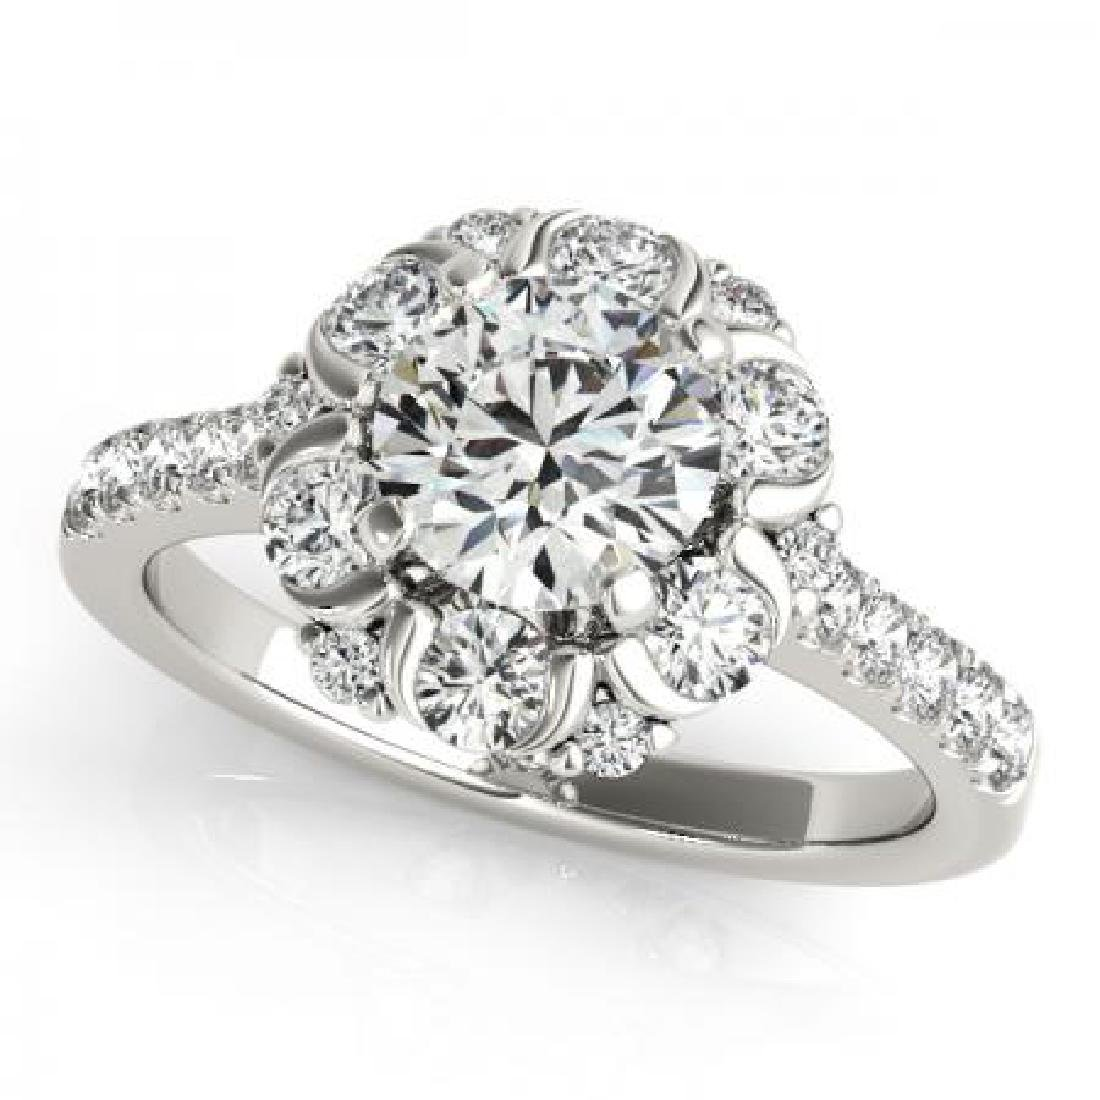 CERTIFIED PLATINUM 1.51 CT G-H/VS-SI1 DIAMOND HALO ENGA